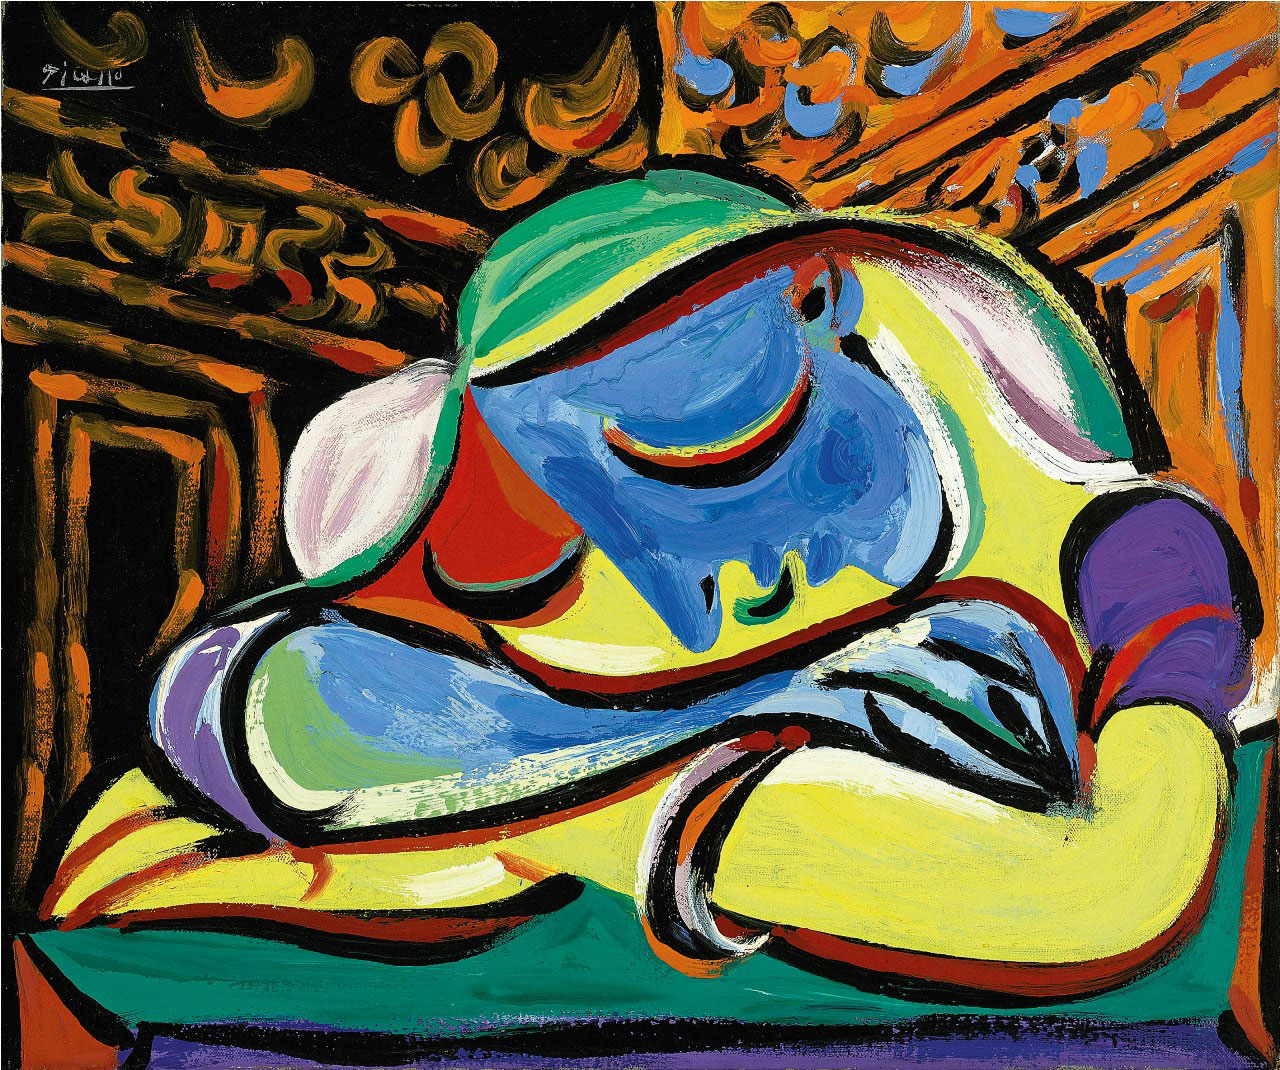 Cuadros De Pablo Picaso Pablo Picasso Musica And Arte Pop On Pinterest